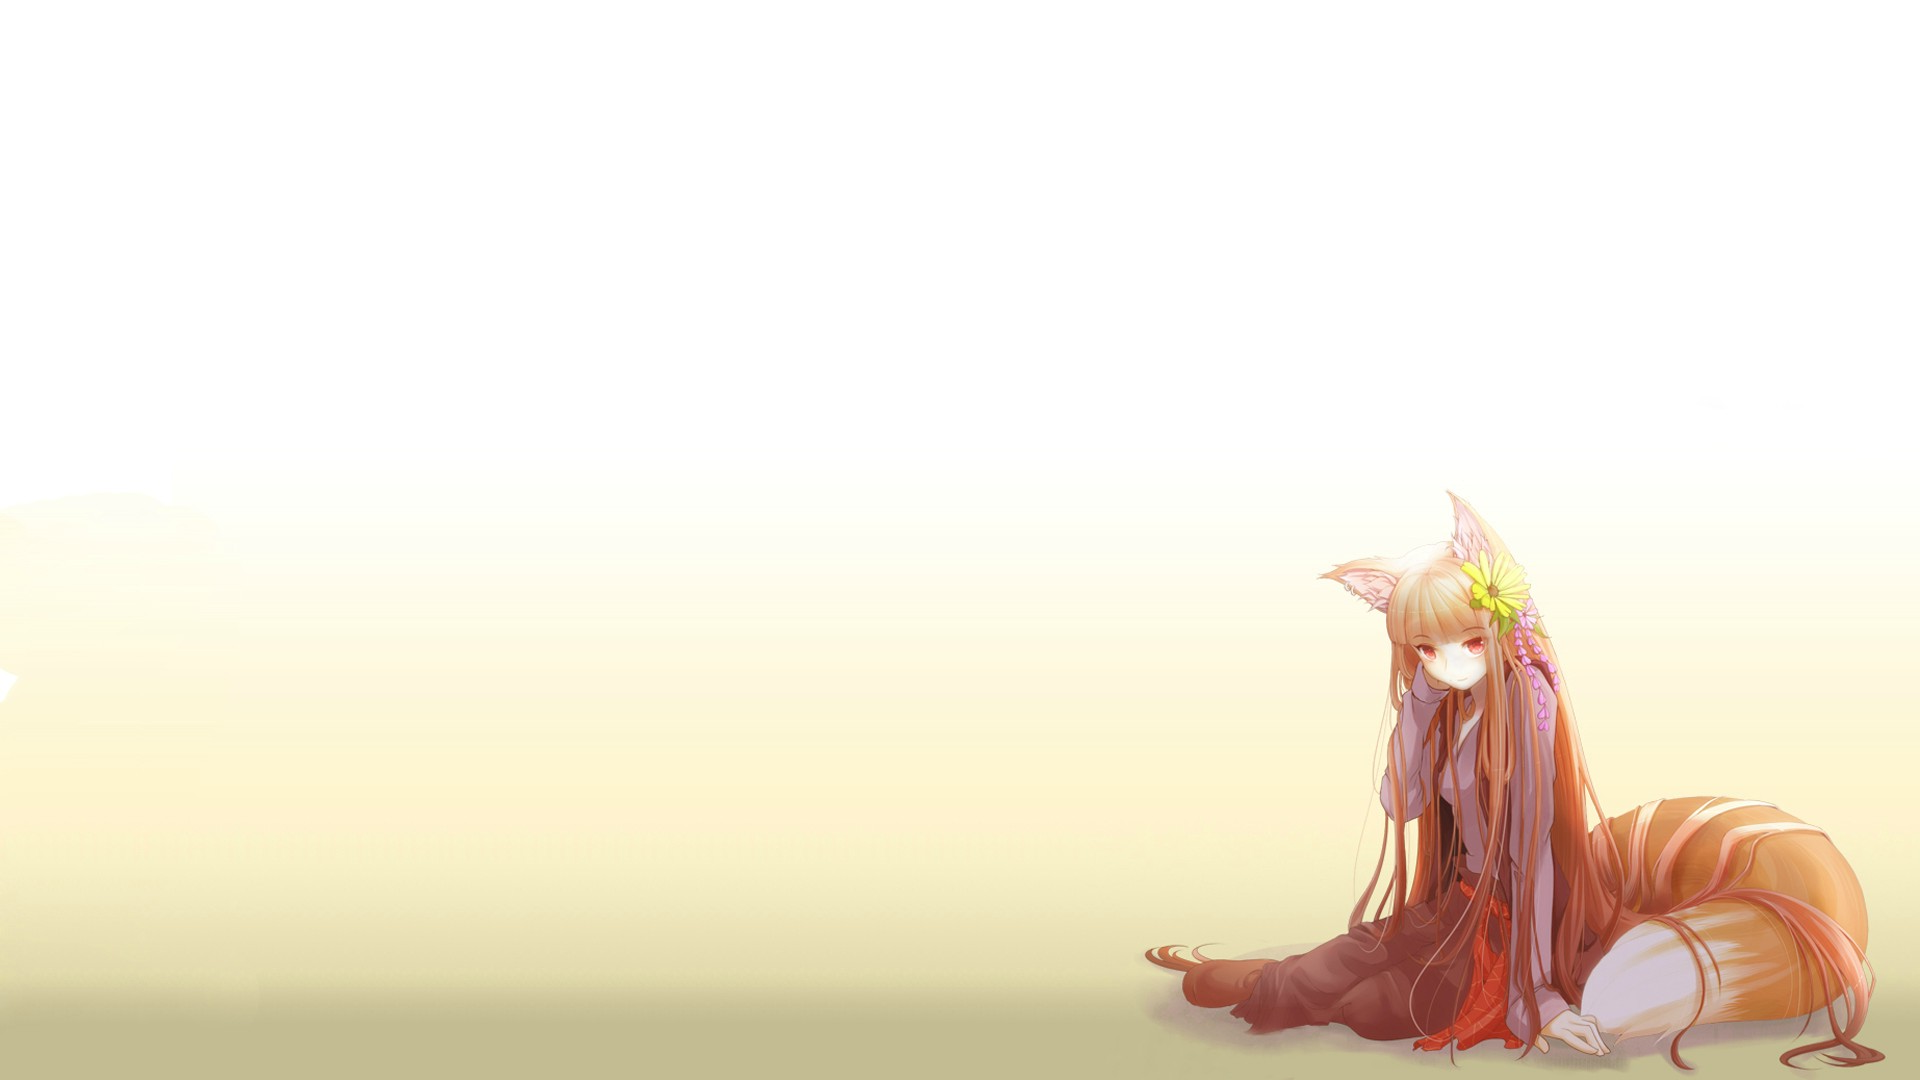 Anime - Spice and Wolf  Holo (Spice & Wolf) Wallpaper